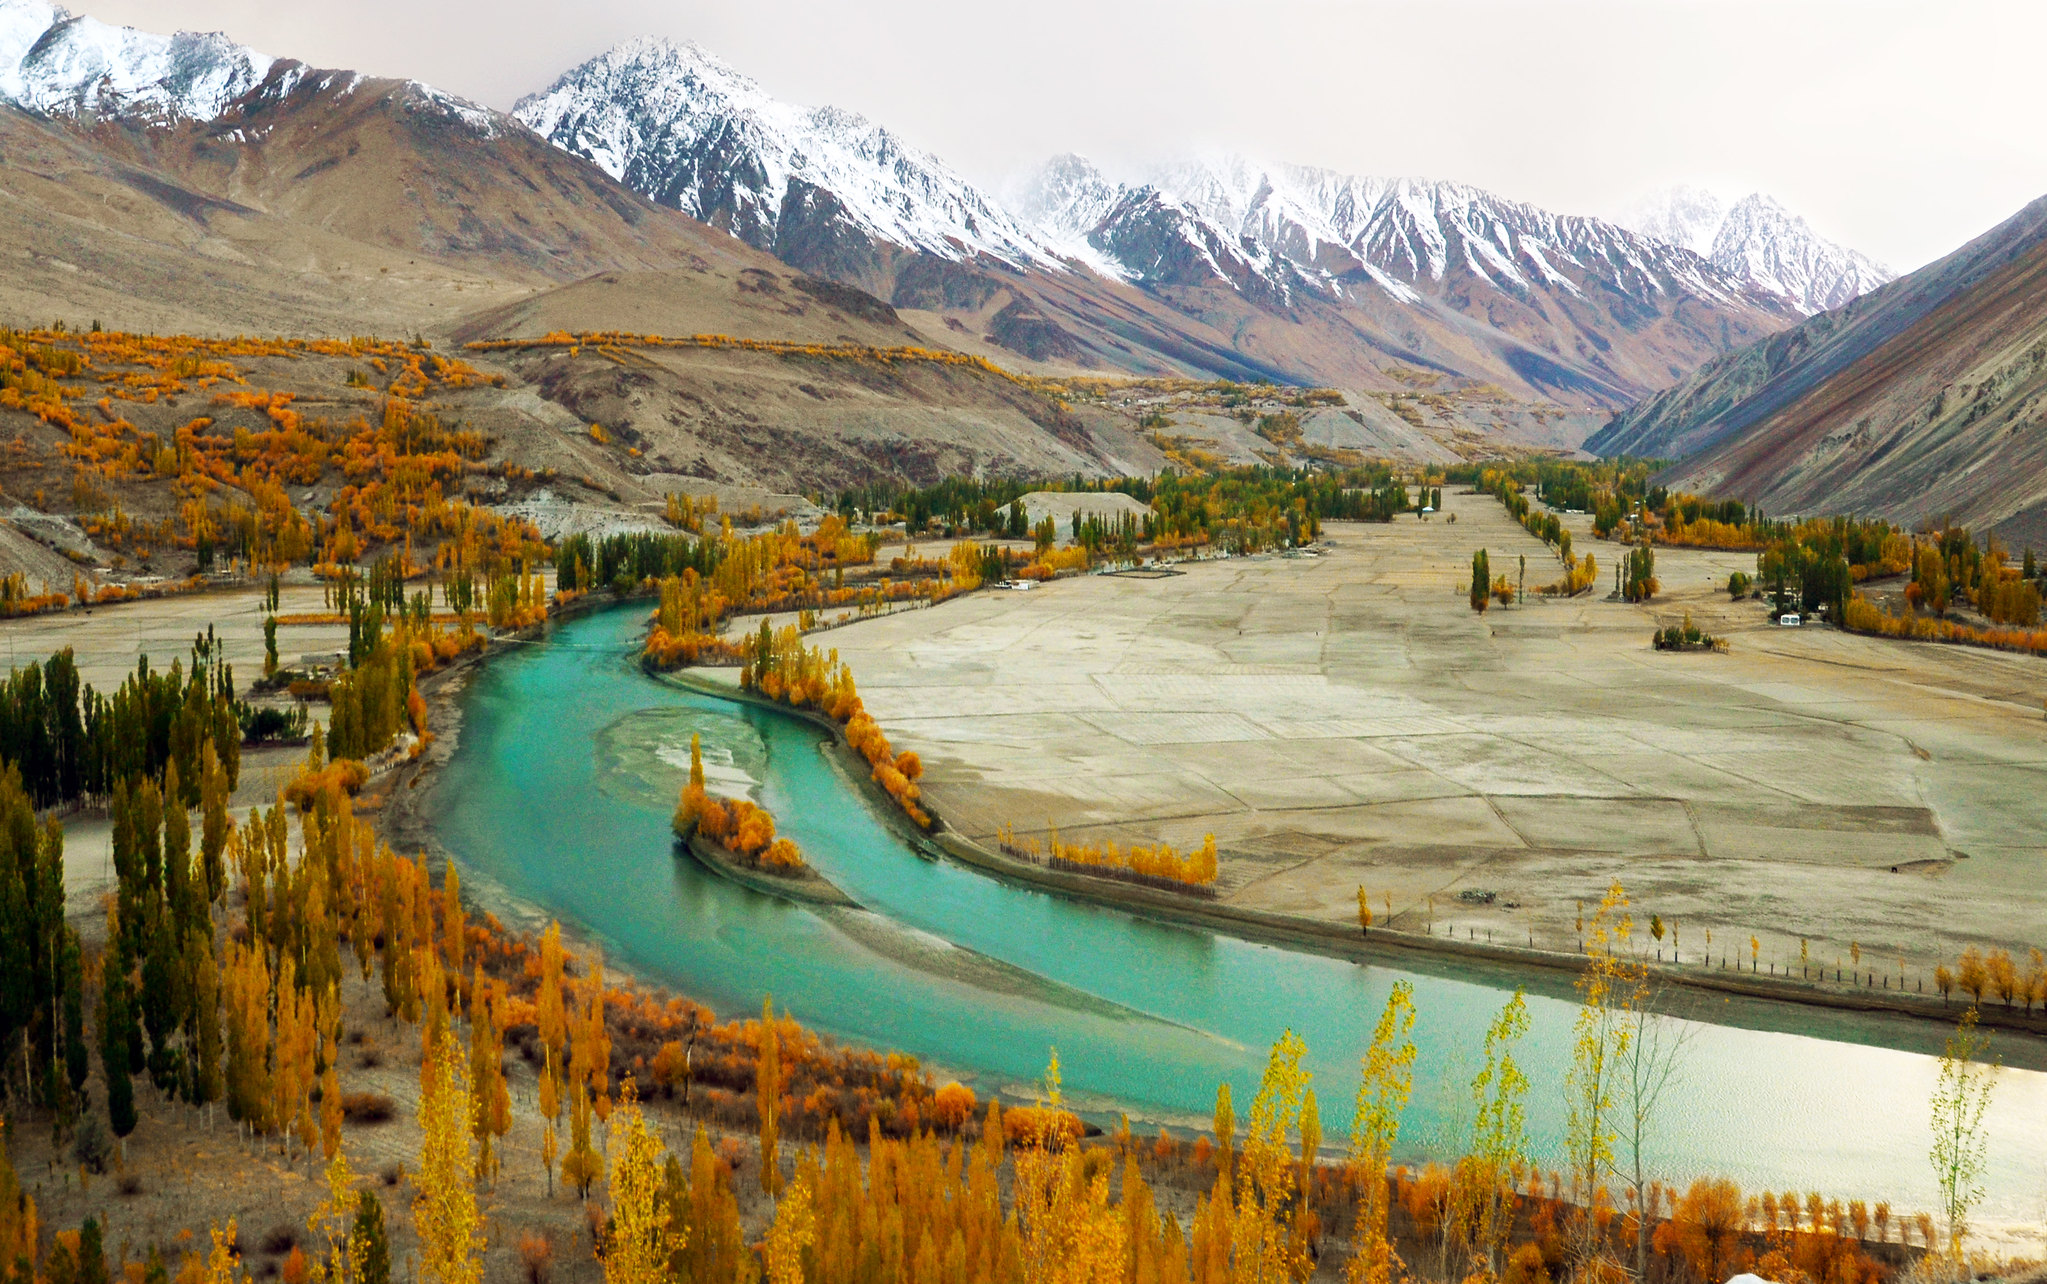 hd wallpapers of nature in pakistan #10